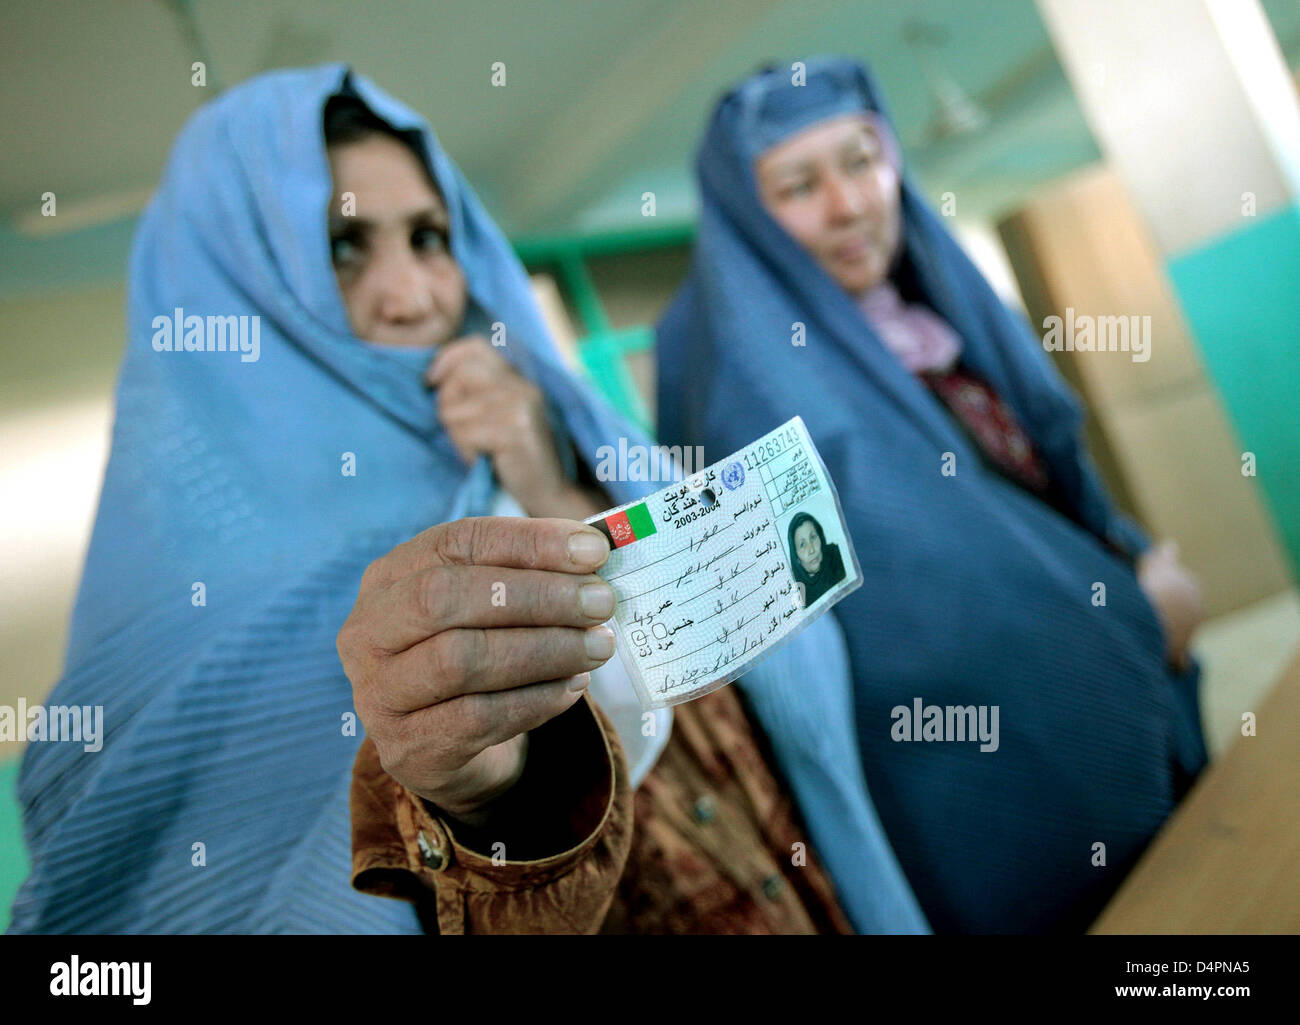 Afghan women hold their identity cards while they wait at a polling station in a mosque in Kabul, Afghanistan, 20 - Stock Image